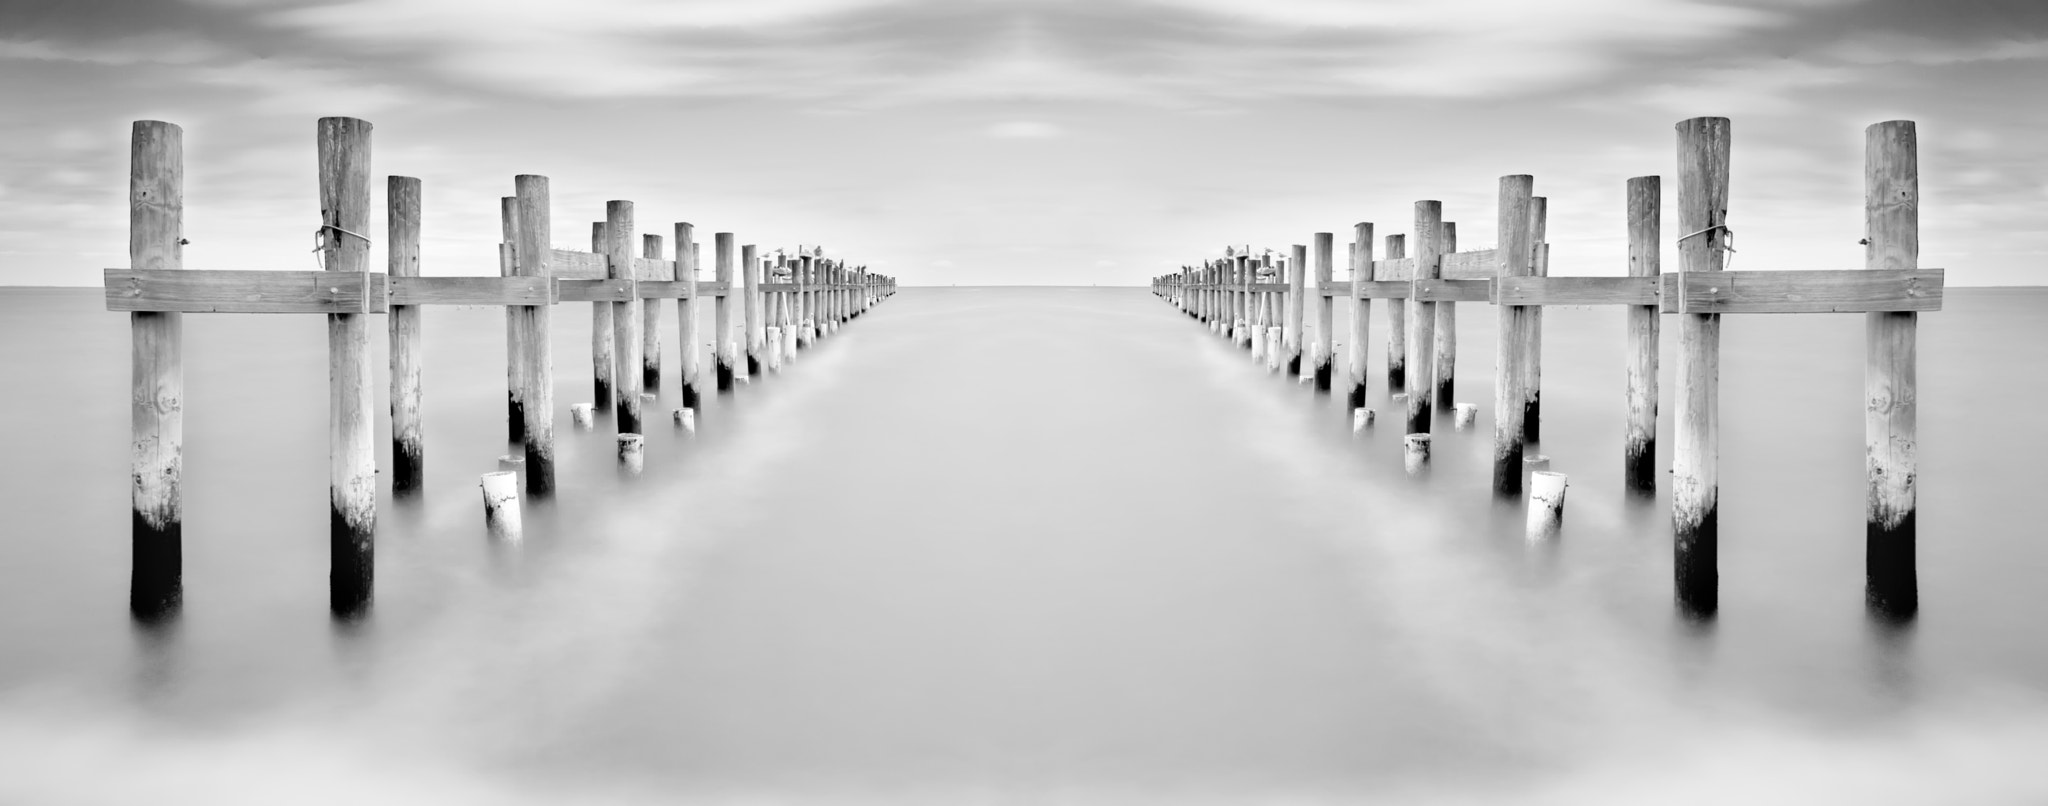 Photograph The Channel by Ian McConnell on 500px